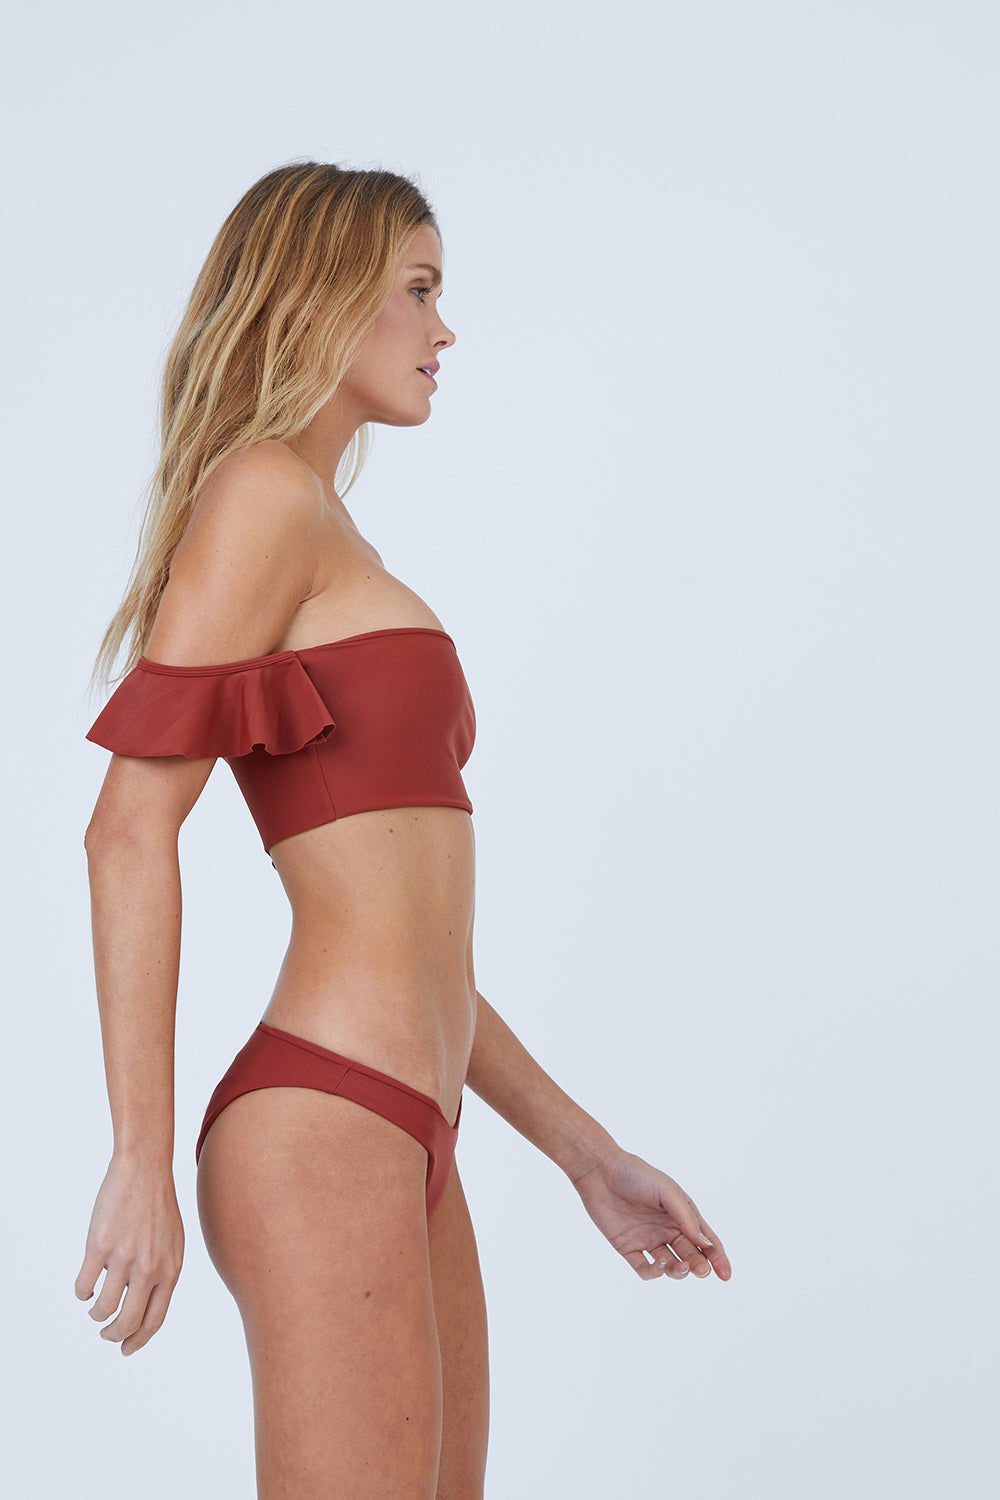 AILA BLUE Wildflower Moderate Bikini Bottom - Canyon Bikini Bottom | Canyon| Aila Blue Wildflower Moderate Bikini Bottom - Canyon Mid Rise  Cheeky-Moderate Coverage  Front View